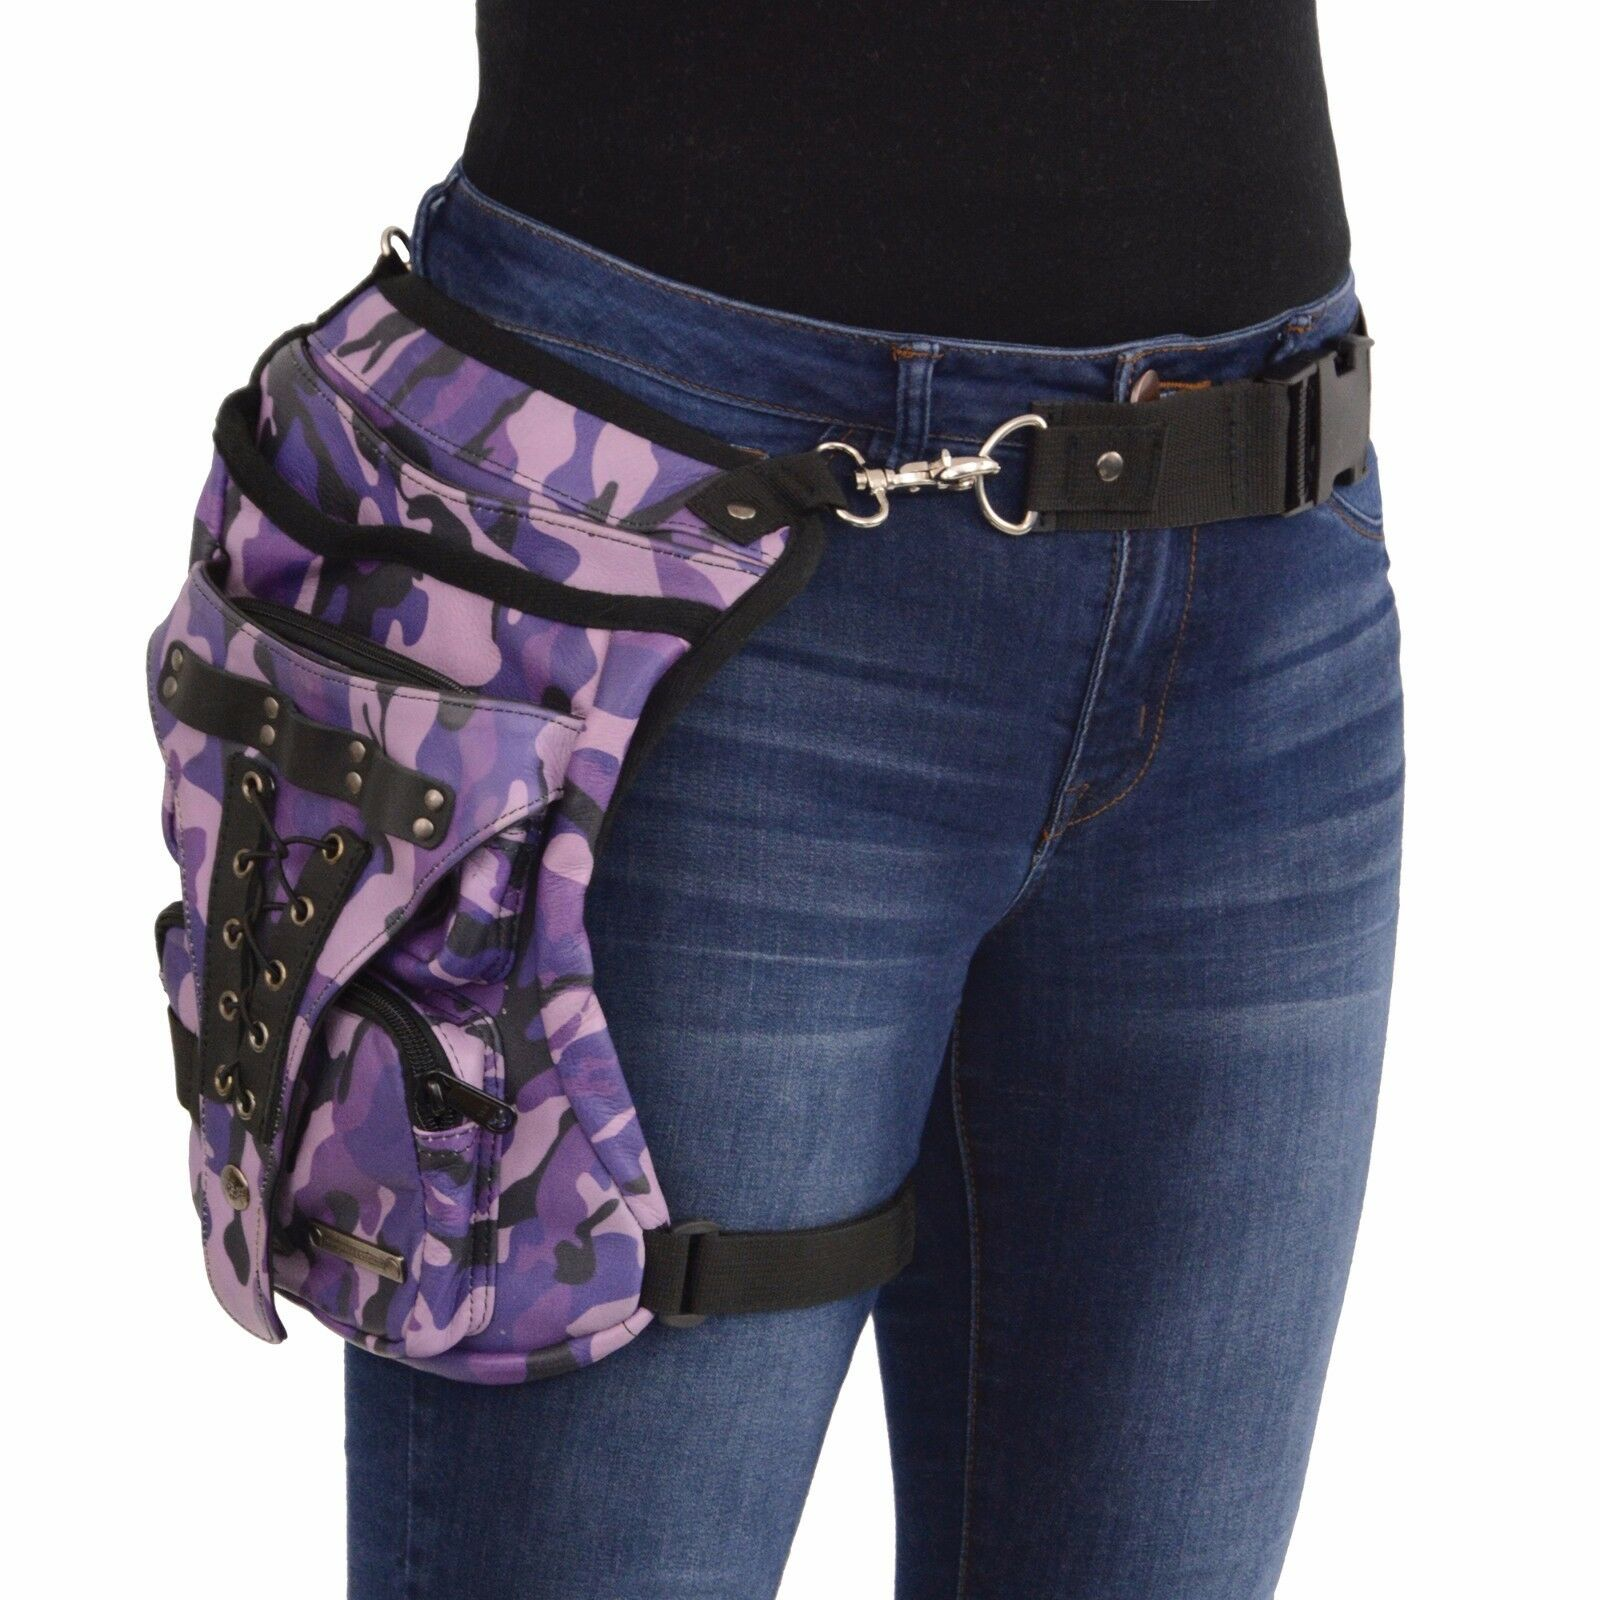 Conceal & Carry Purple Camouflage Camouflage Camouflage Leather Thigh Bag W  Waist Belt - MP8886 e51674